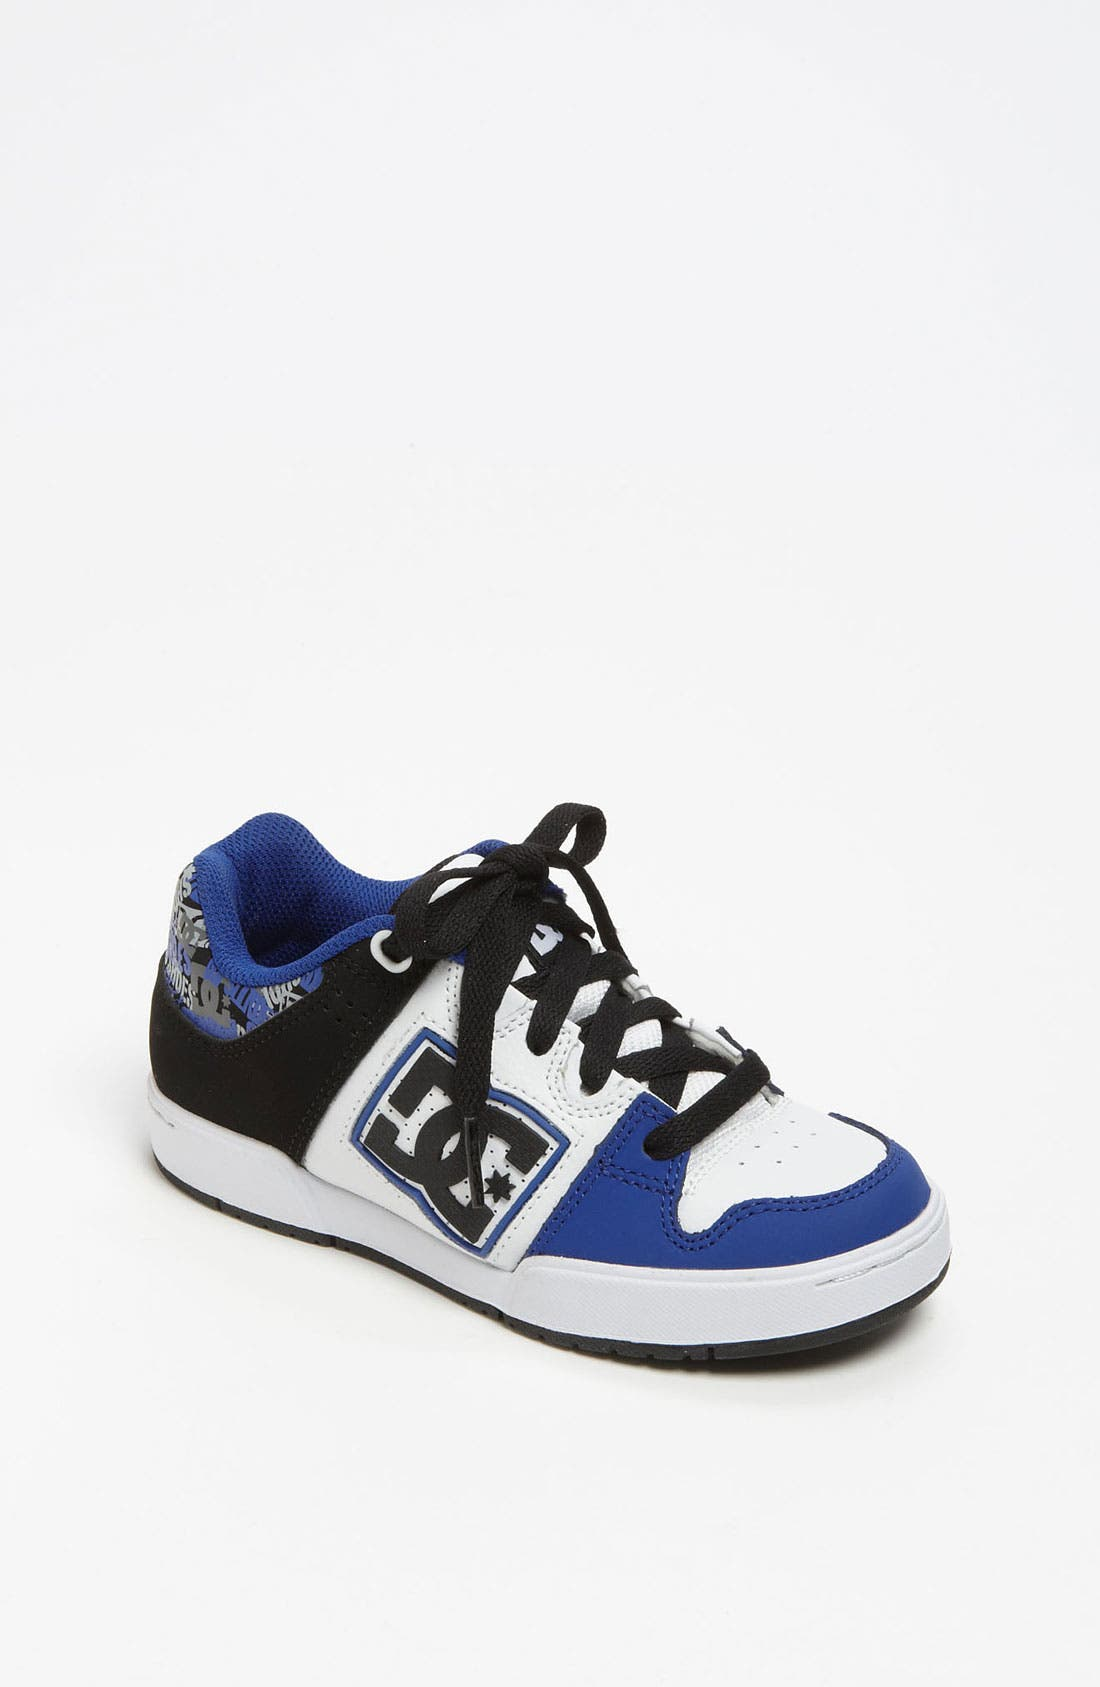 Main Image - DC Shoes 'Turbo 2' Sneaker (Little Kid & Big Kid)